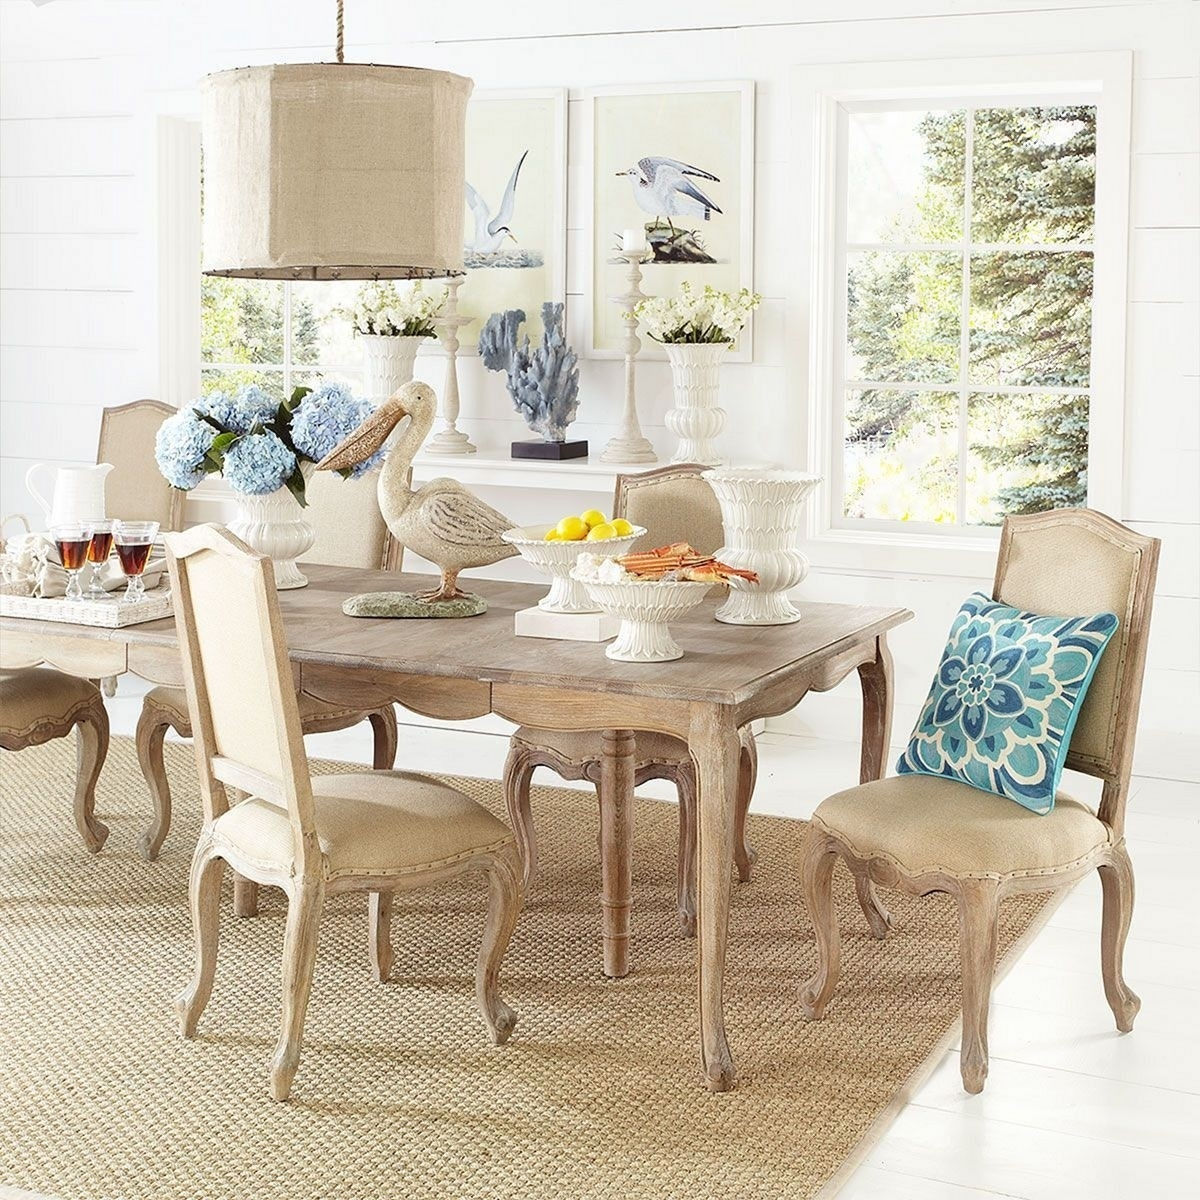 Large Round Dining Table Seats 10 Ideas On Foter